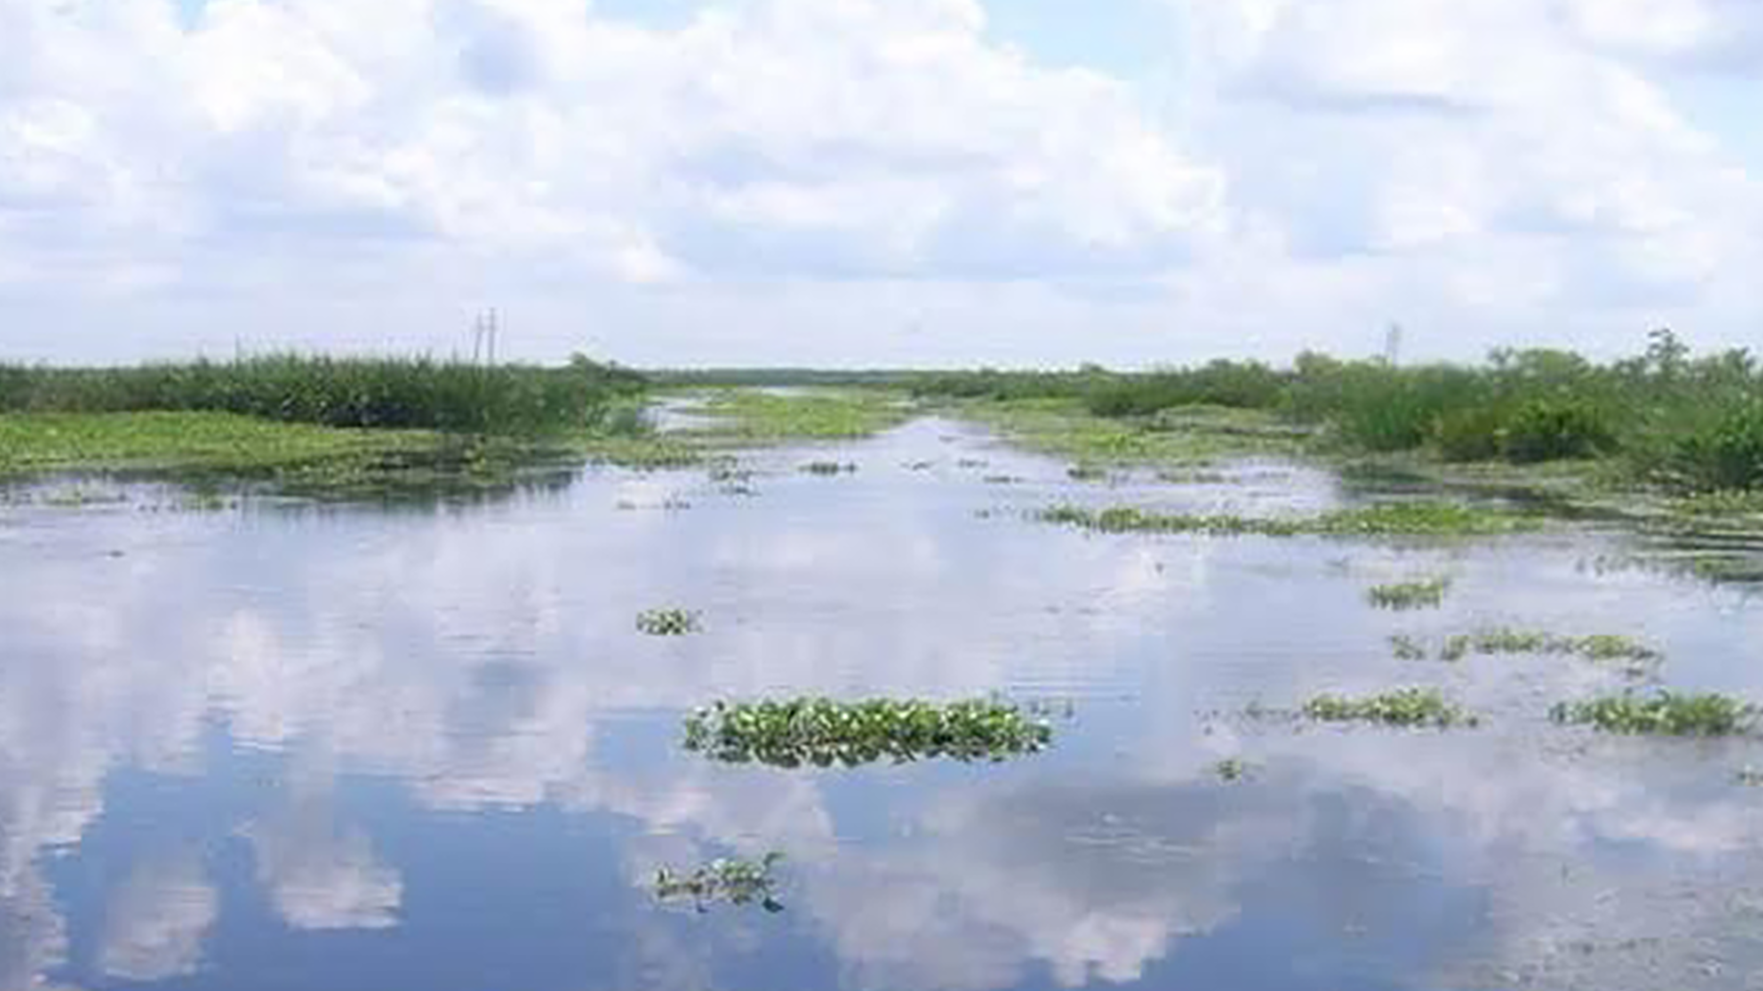 Marsh land in Jean Lafitte National Historic Park and Preserve